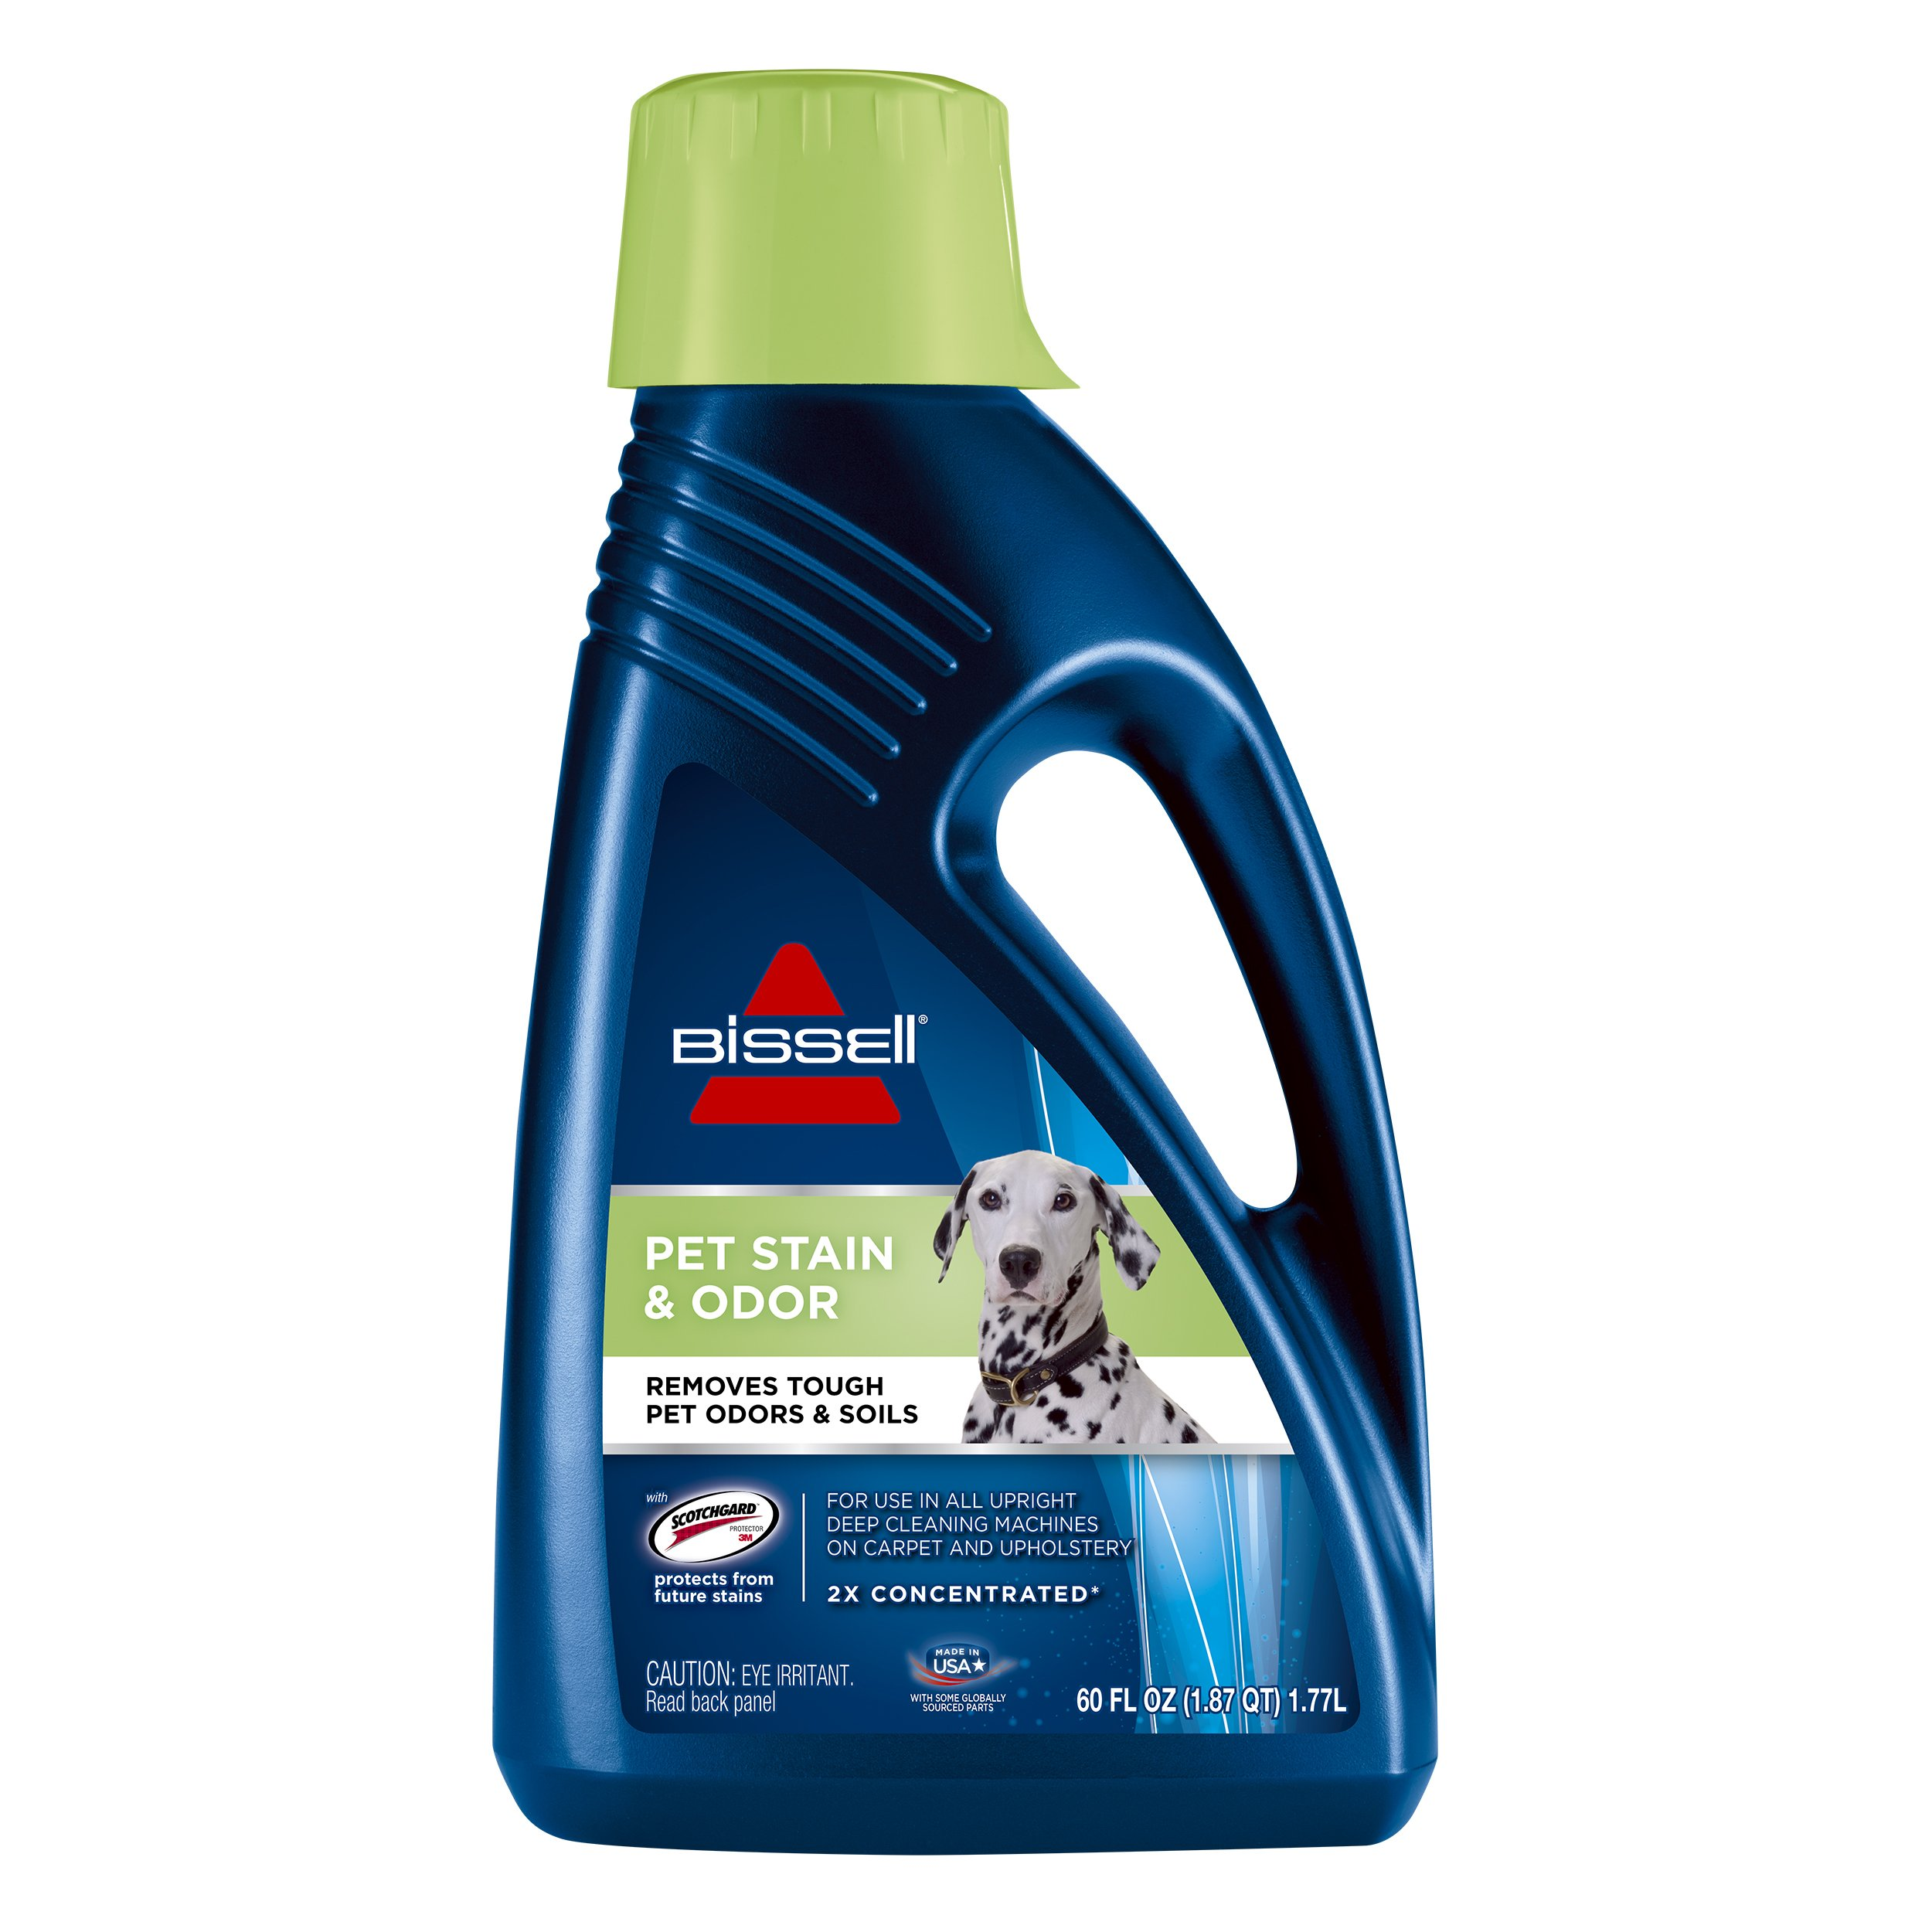 Bissell 2X Pet Stain & Odor Full Size Machine Formula, 60 ounces, 99K5A by Bissell